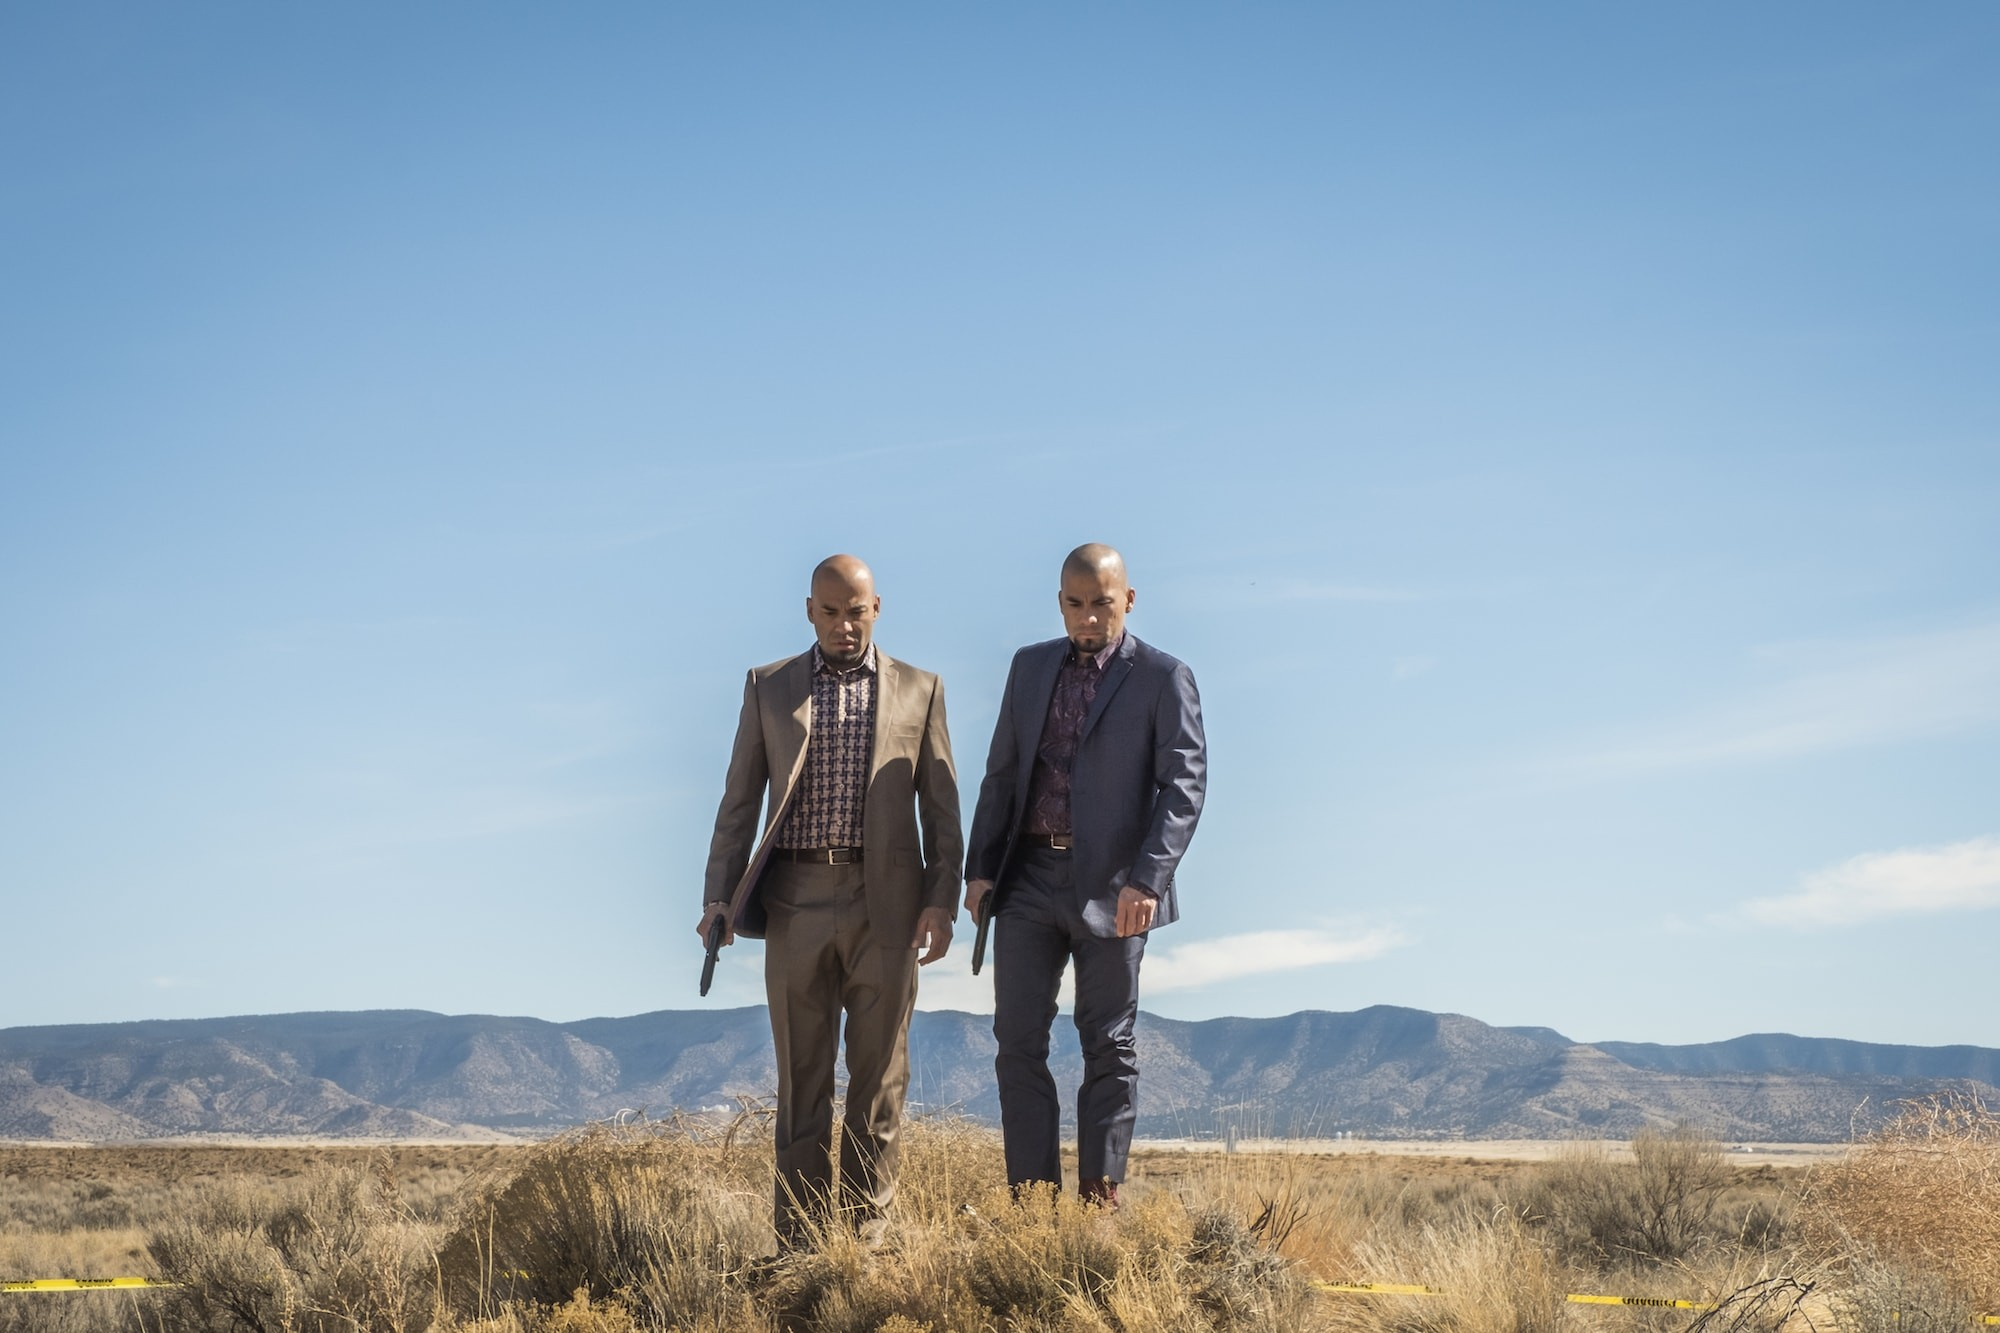 better-call-saul-season-4-images-6-min.jpg